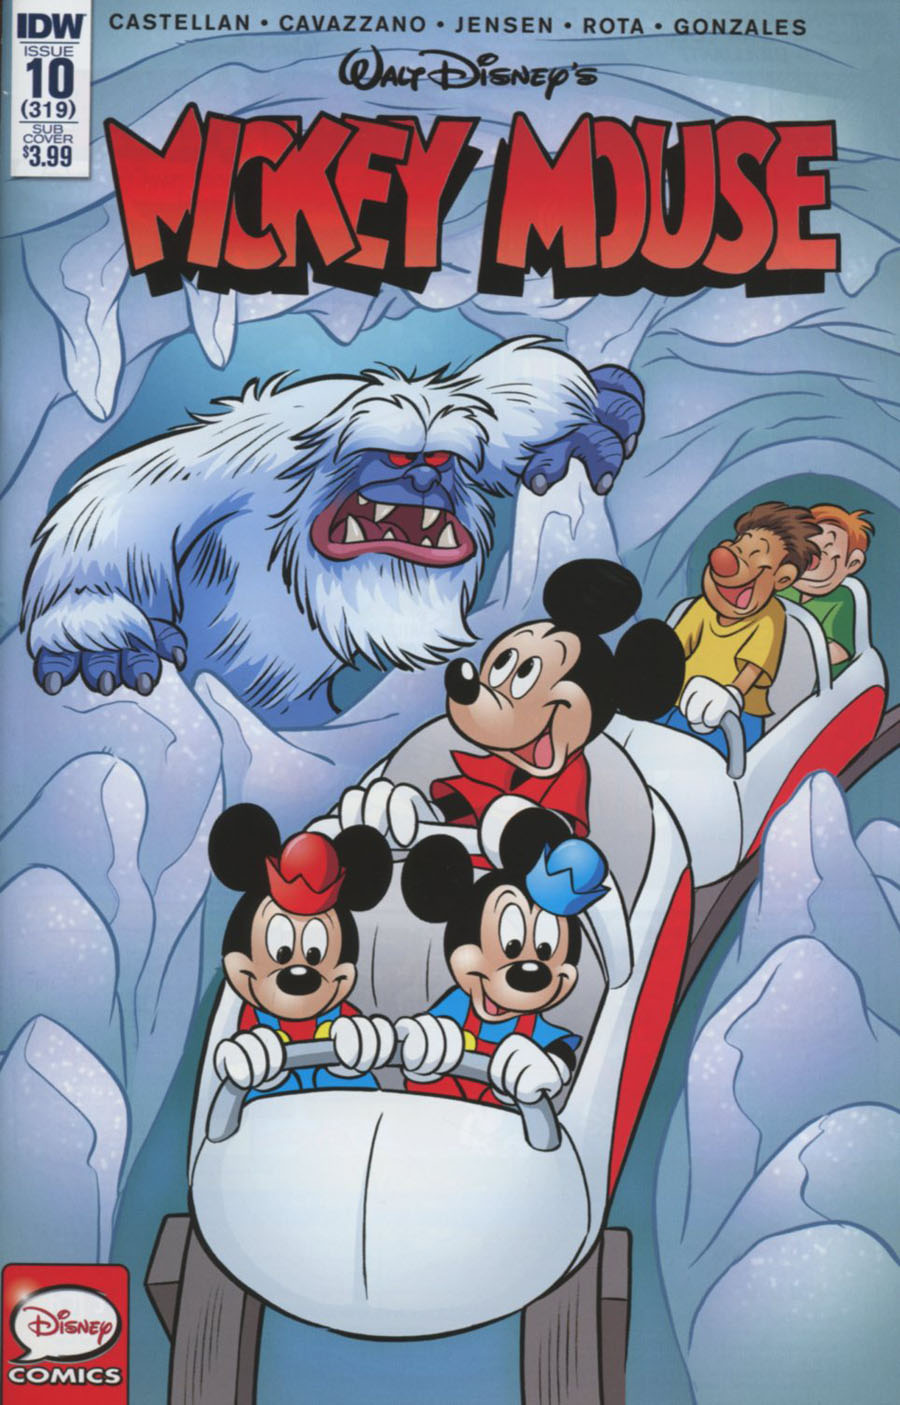 Mickey Mouse Vol 2 #10 Cover B Variant Alessandro Perina Subscription Cover